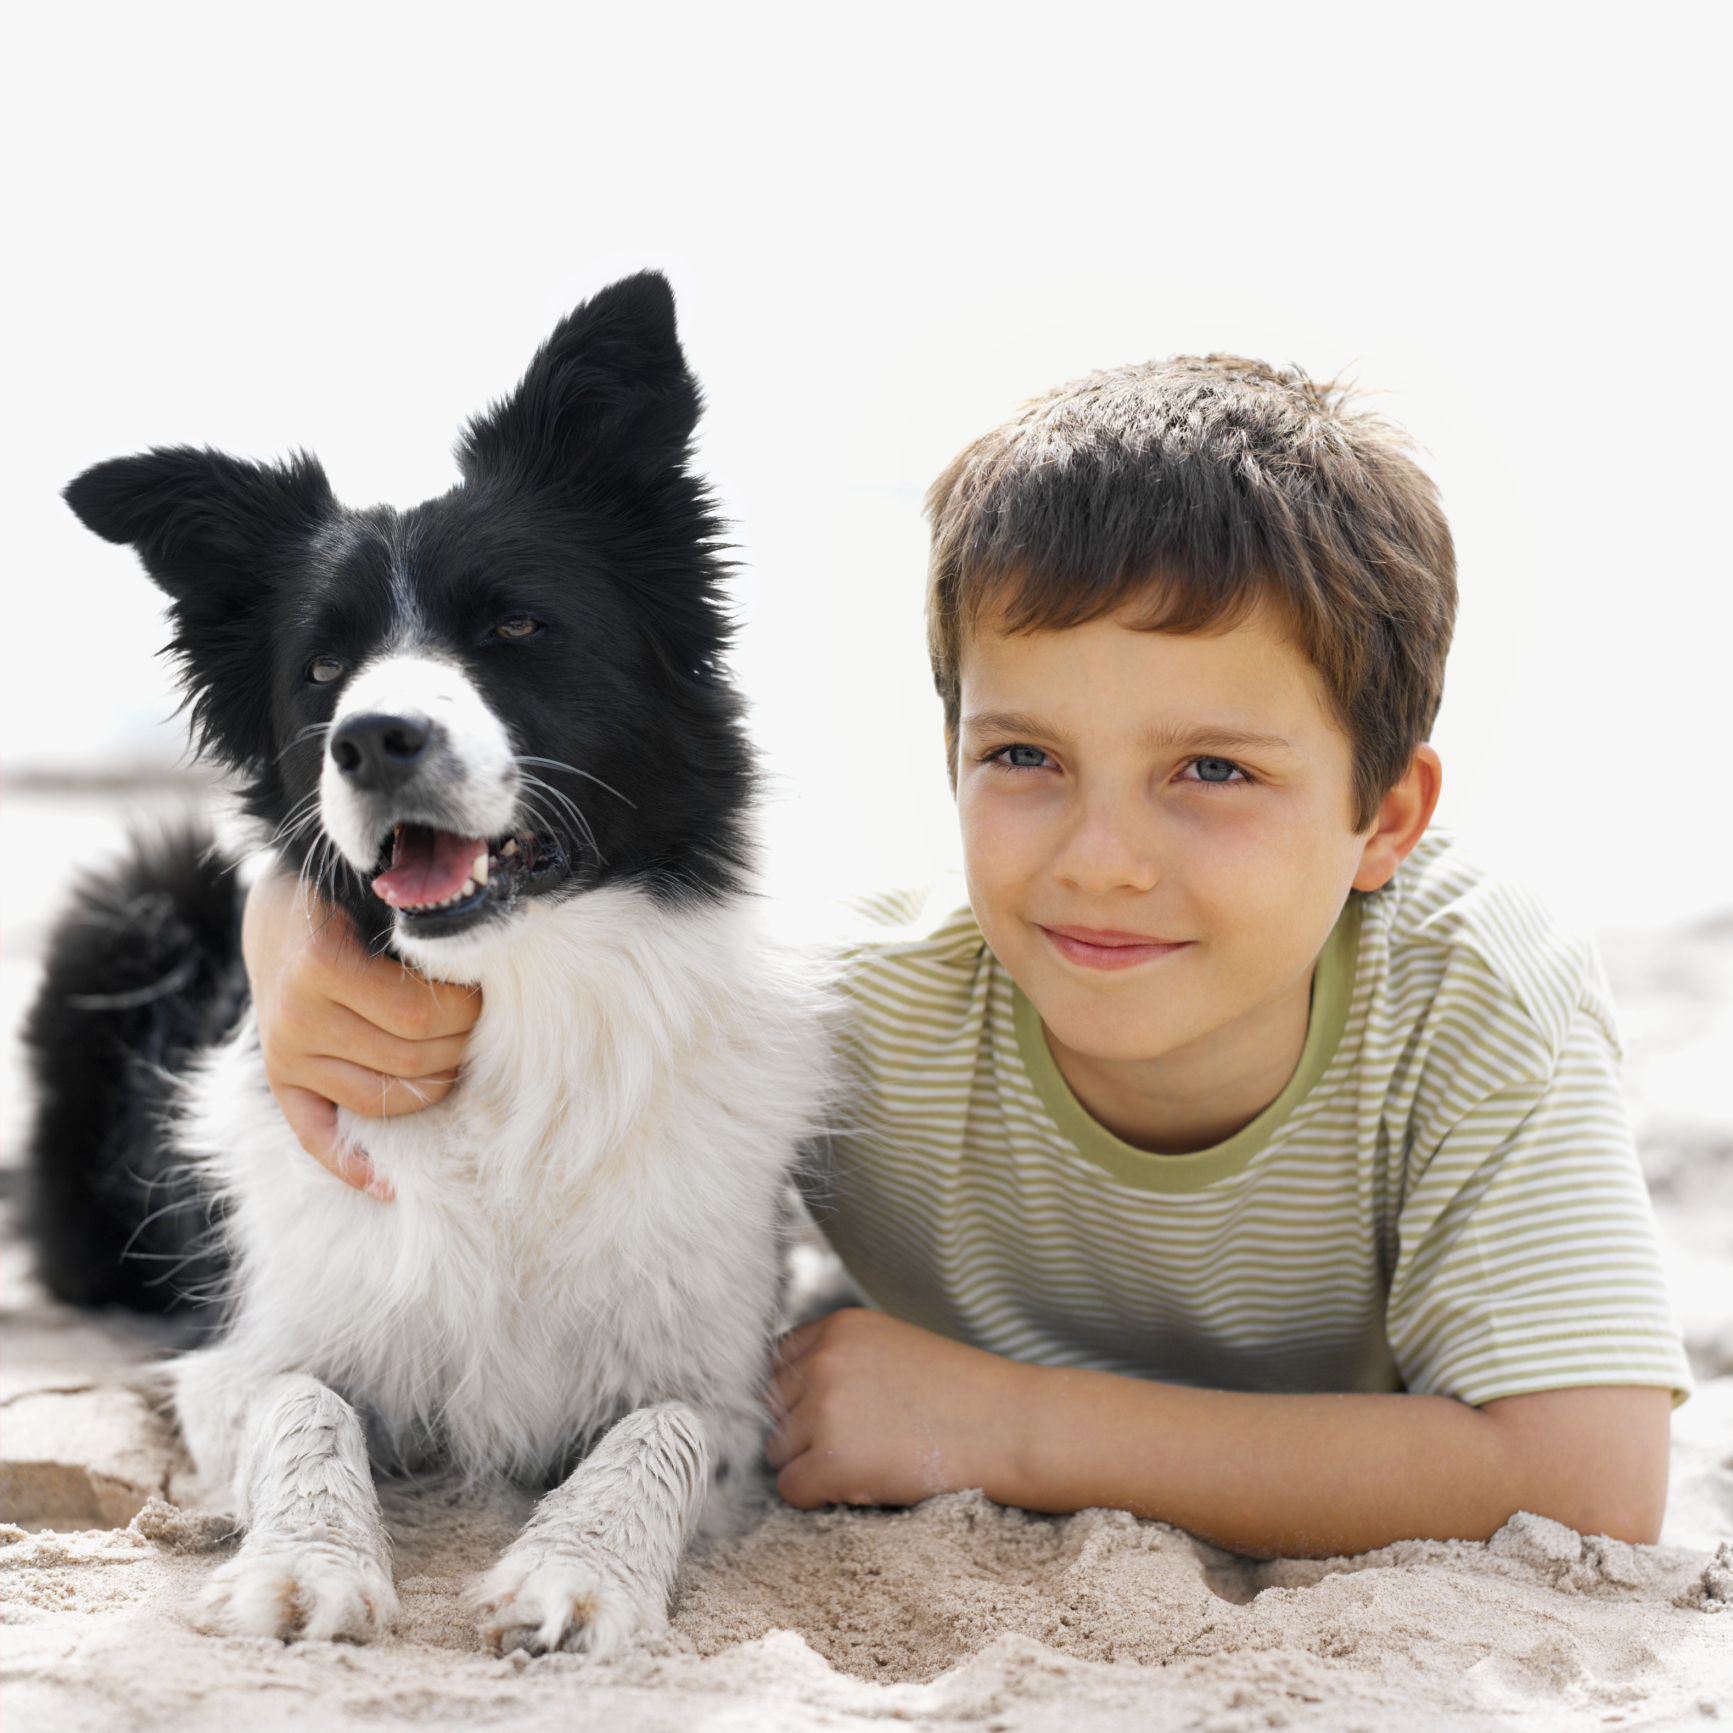 boy-and-dog-new.jpg